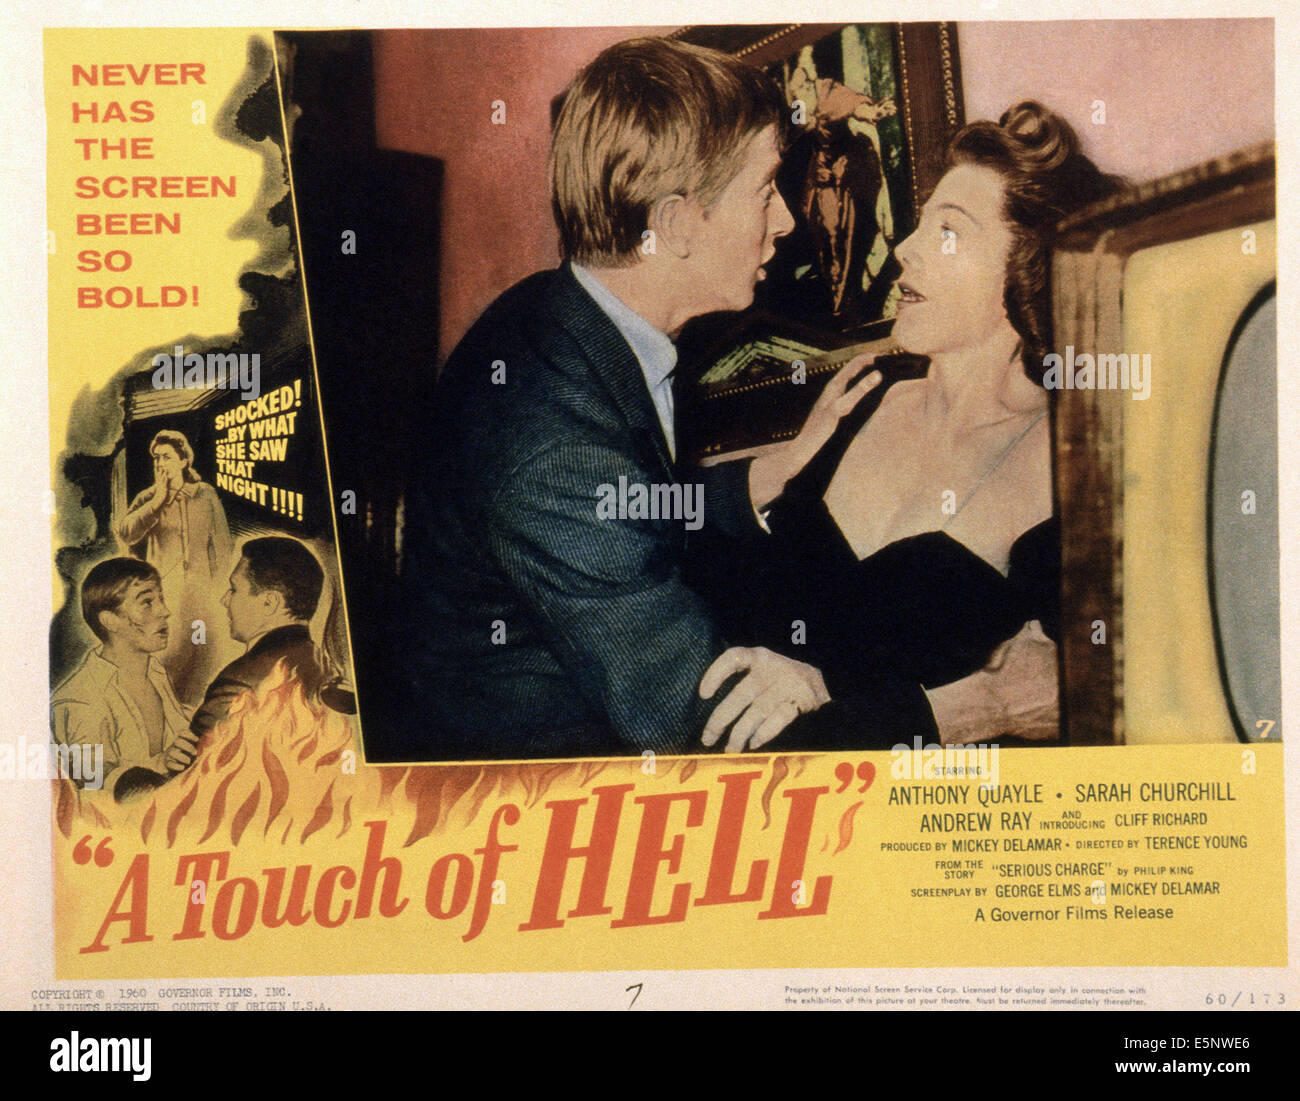 A TOUCH OF HELL, (aka SERIOUS CHARGE), US lobbycard, center from left: Andrew Ray, Sarah Churchill, 1959 Stock Photo